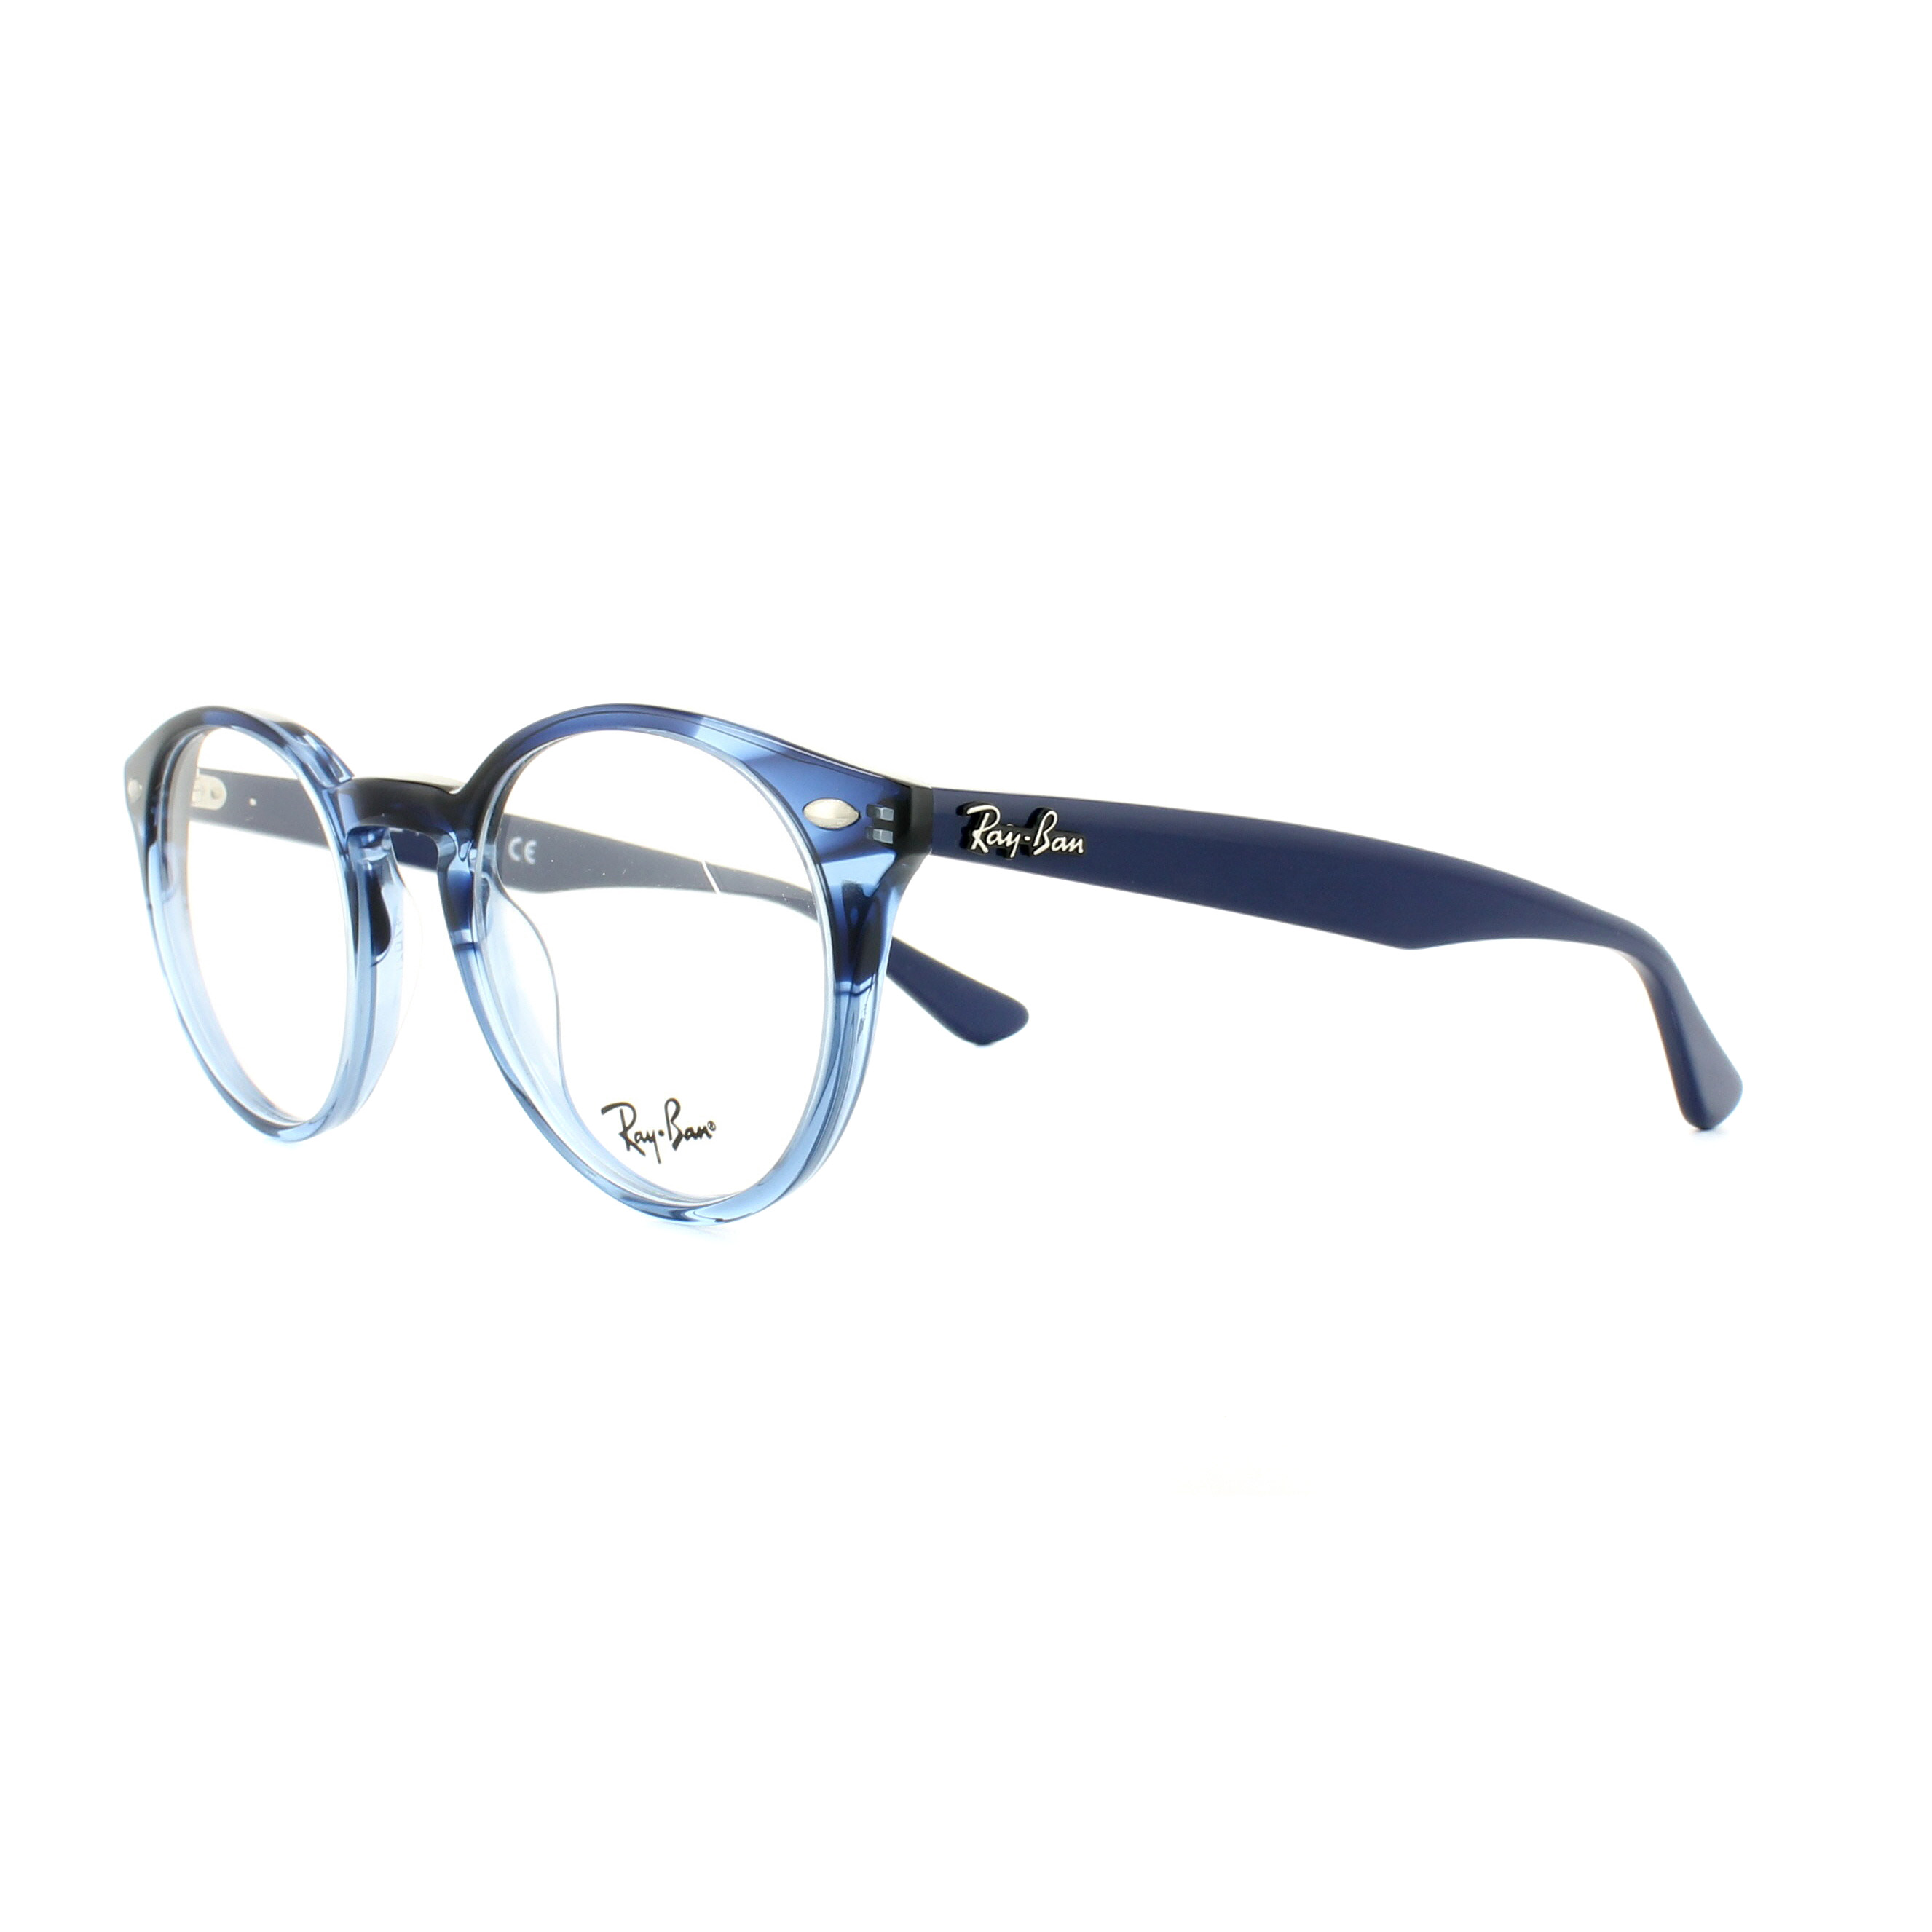 9465137edf Details about Ray-Ban Glasses Frames 2180V 5572 Transparent Striped Blue  47mm Mens Womens